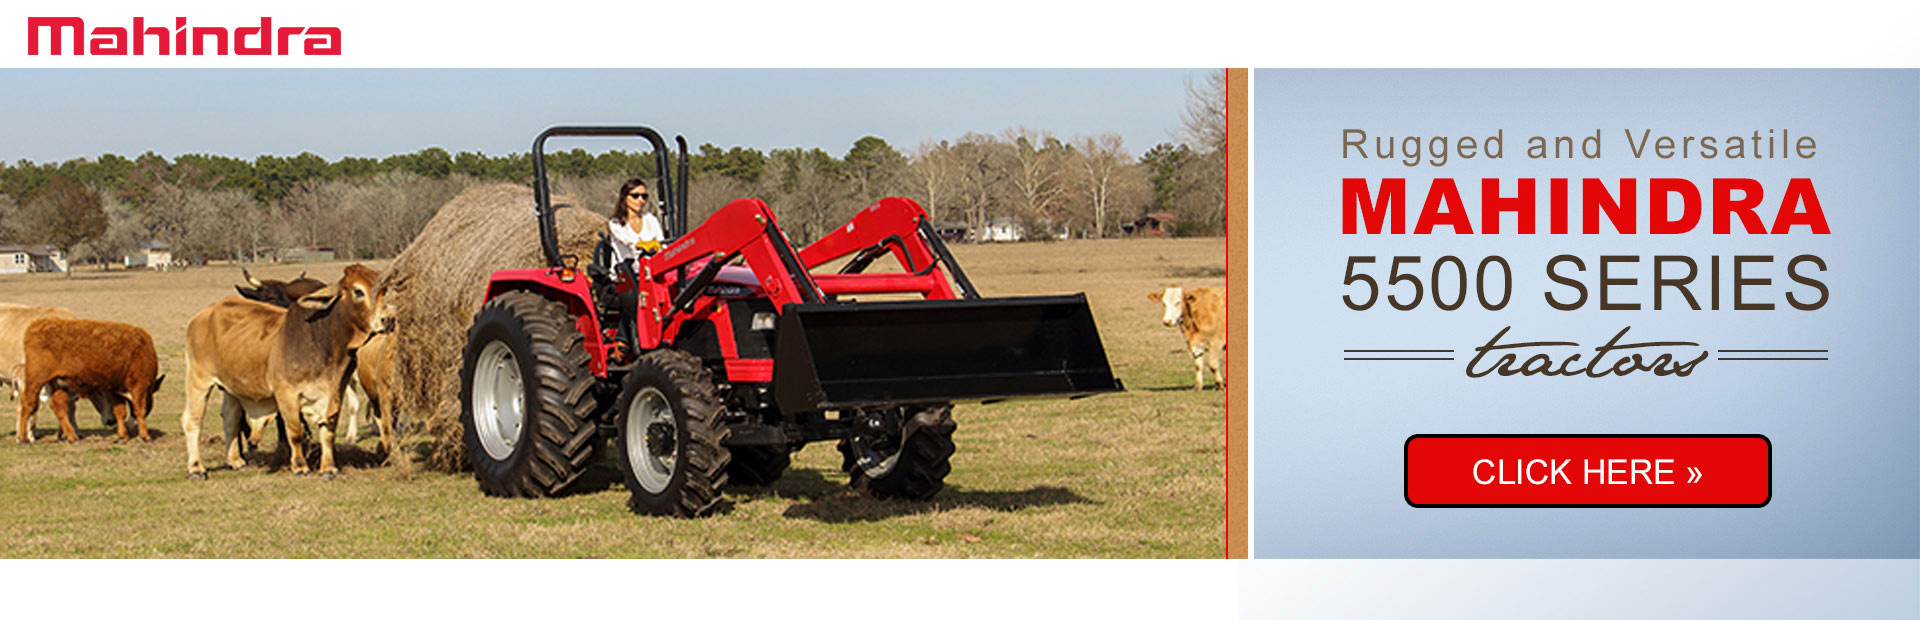 Click here to view our selection of Mahindra 5500 series tractors!